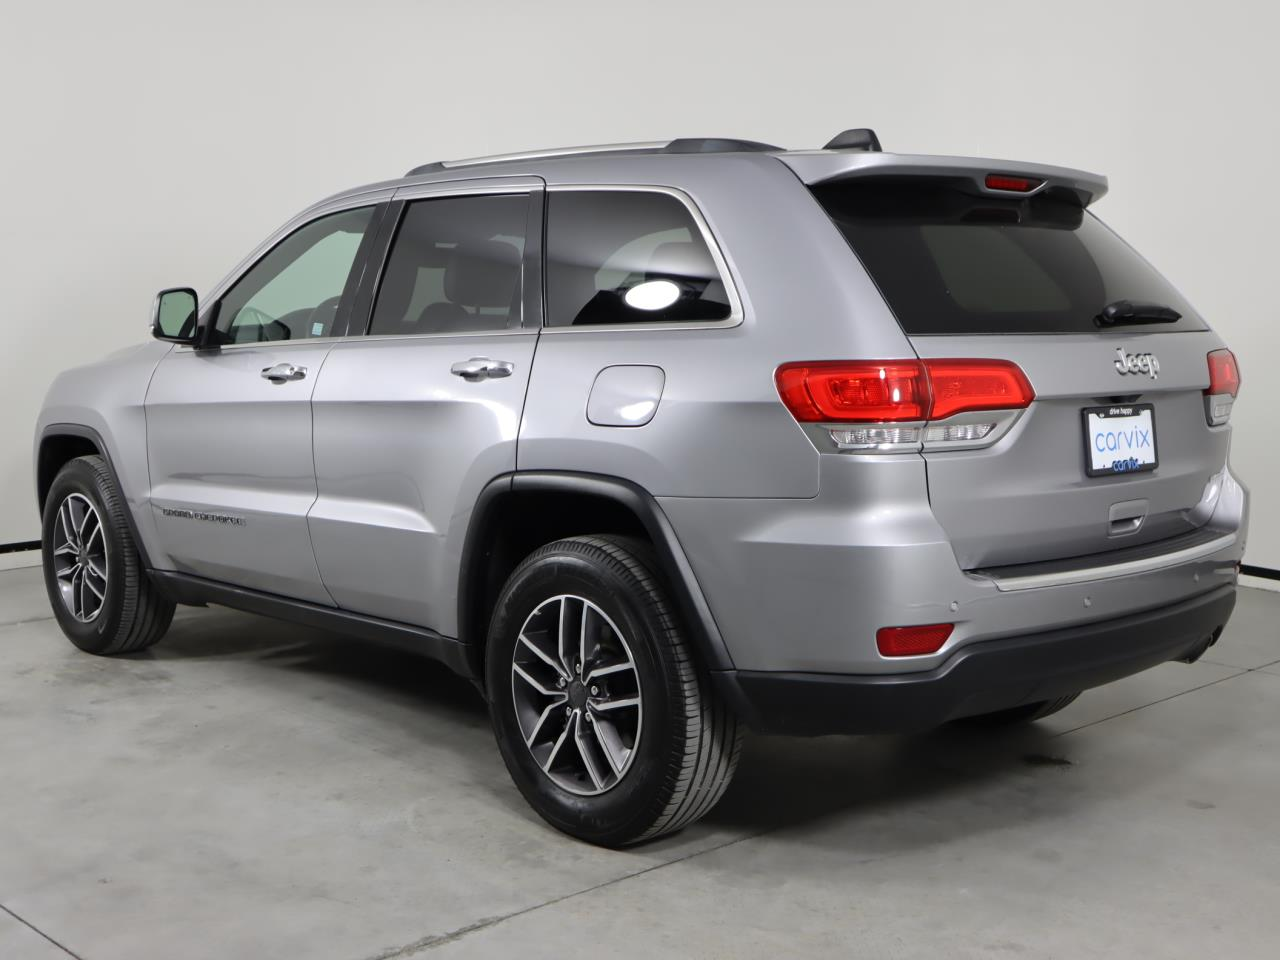 used vehicle - SUV JEEP GRAND CHEROKEE 2019